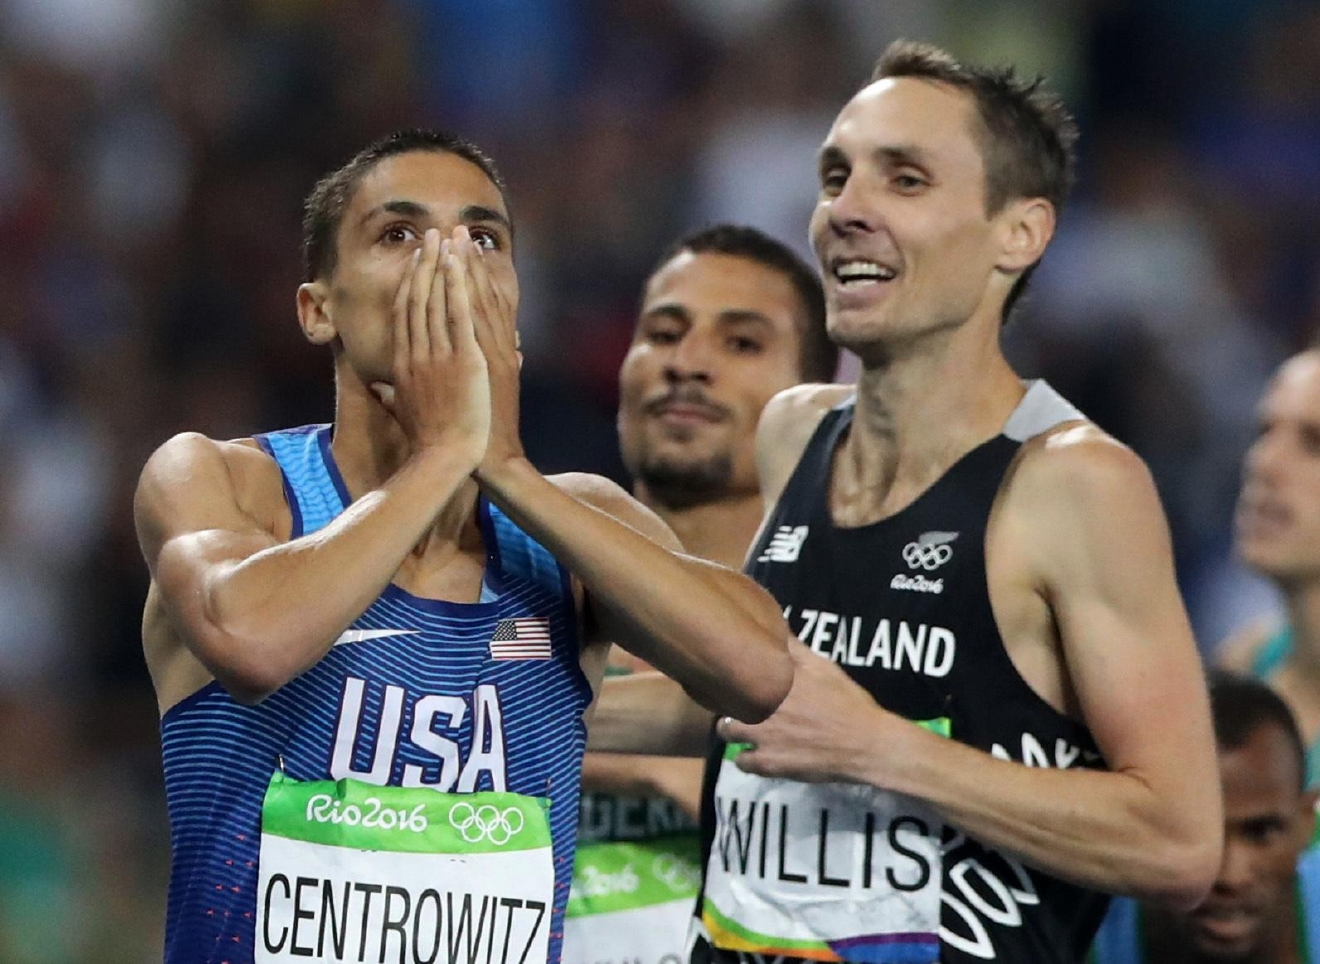 United States' Matthew Centrowitz, left, reacts to winning the gold after crossing the finish line with New Zealand's Nicholas Willis for the men's 1500-meter final at the athletics event during the Summer Olympics at Olympic stadium in Rio de Janeiro, Brazil, Saturday, Aug. 20, 2016. (AP Photo/Lee Jin-man)